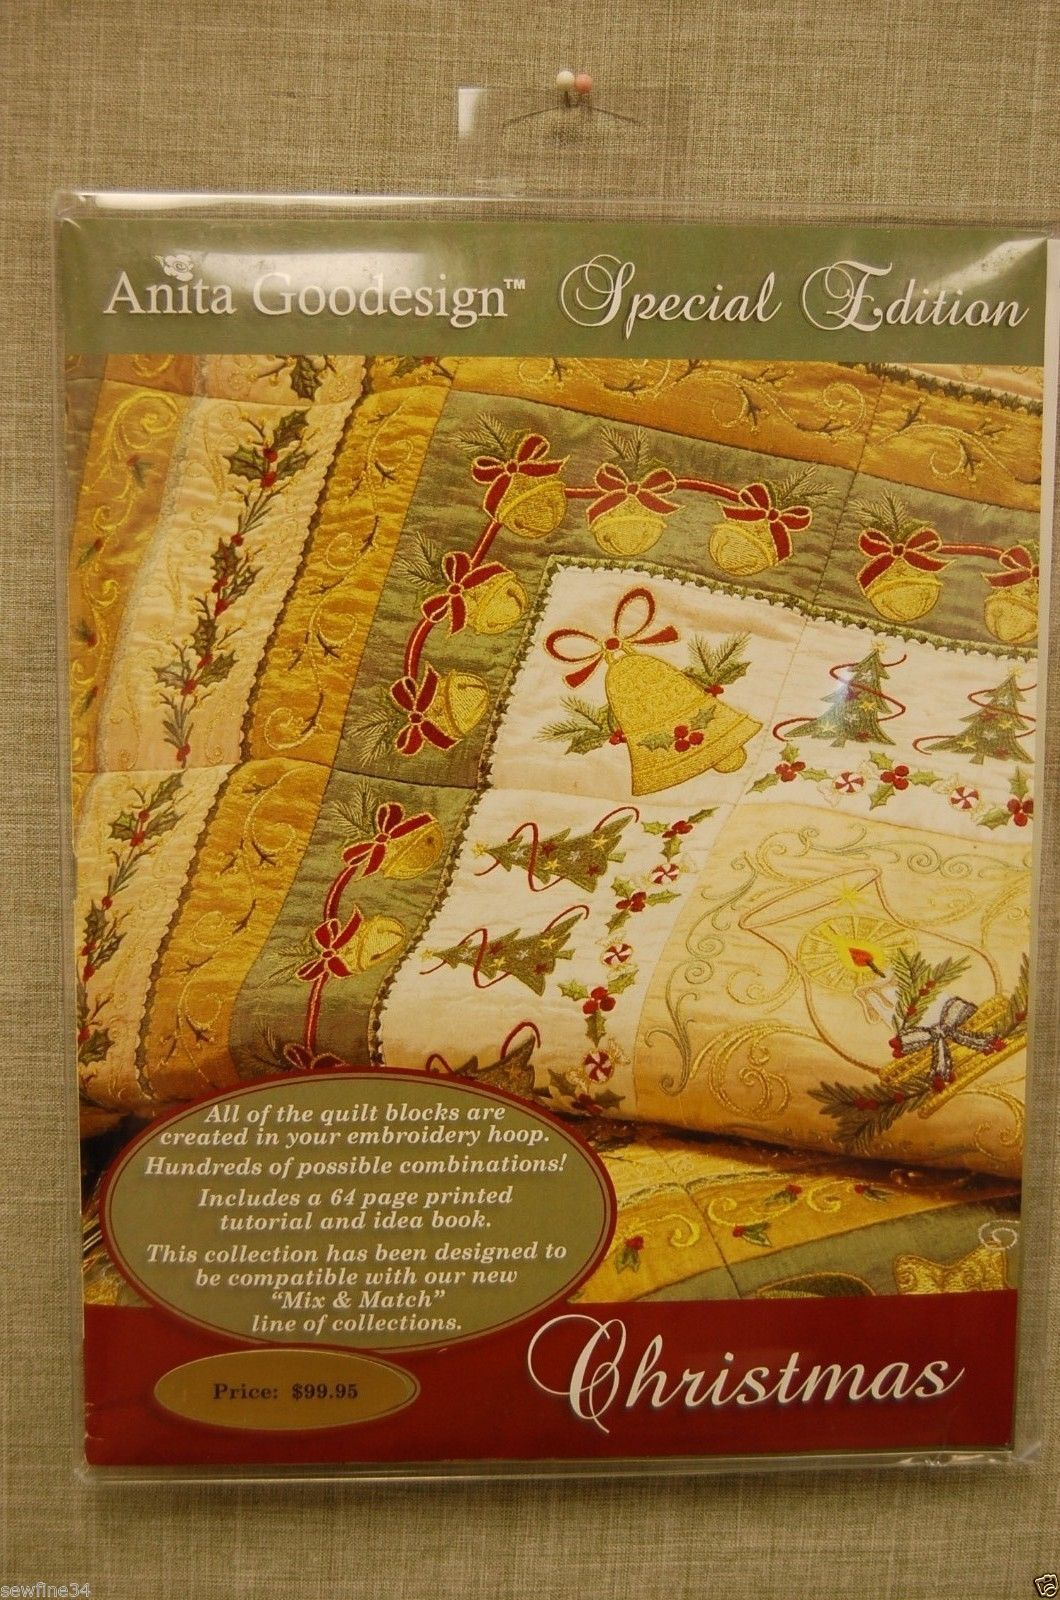 Anita Goodesign Special Edition Collection Your choice of one collection